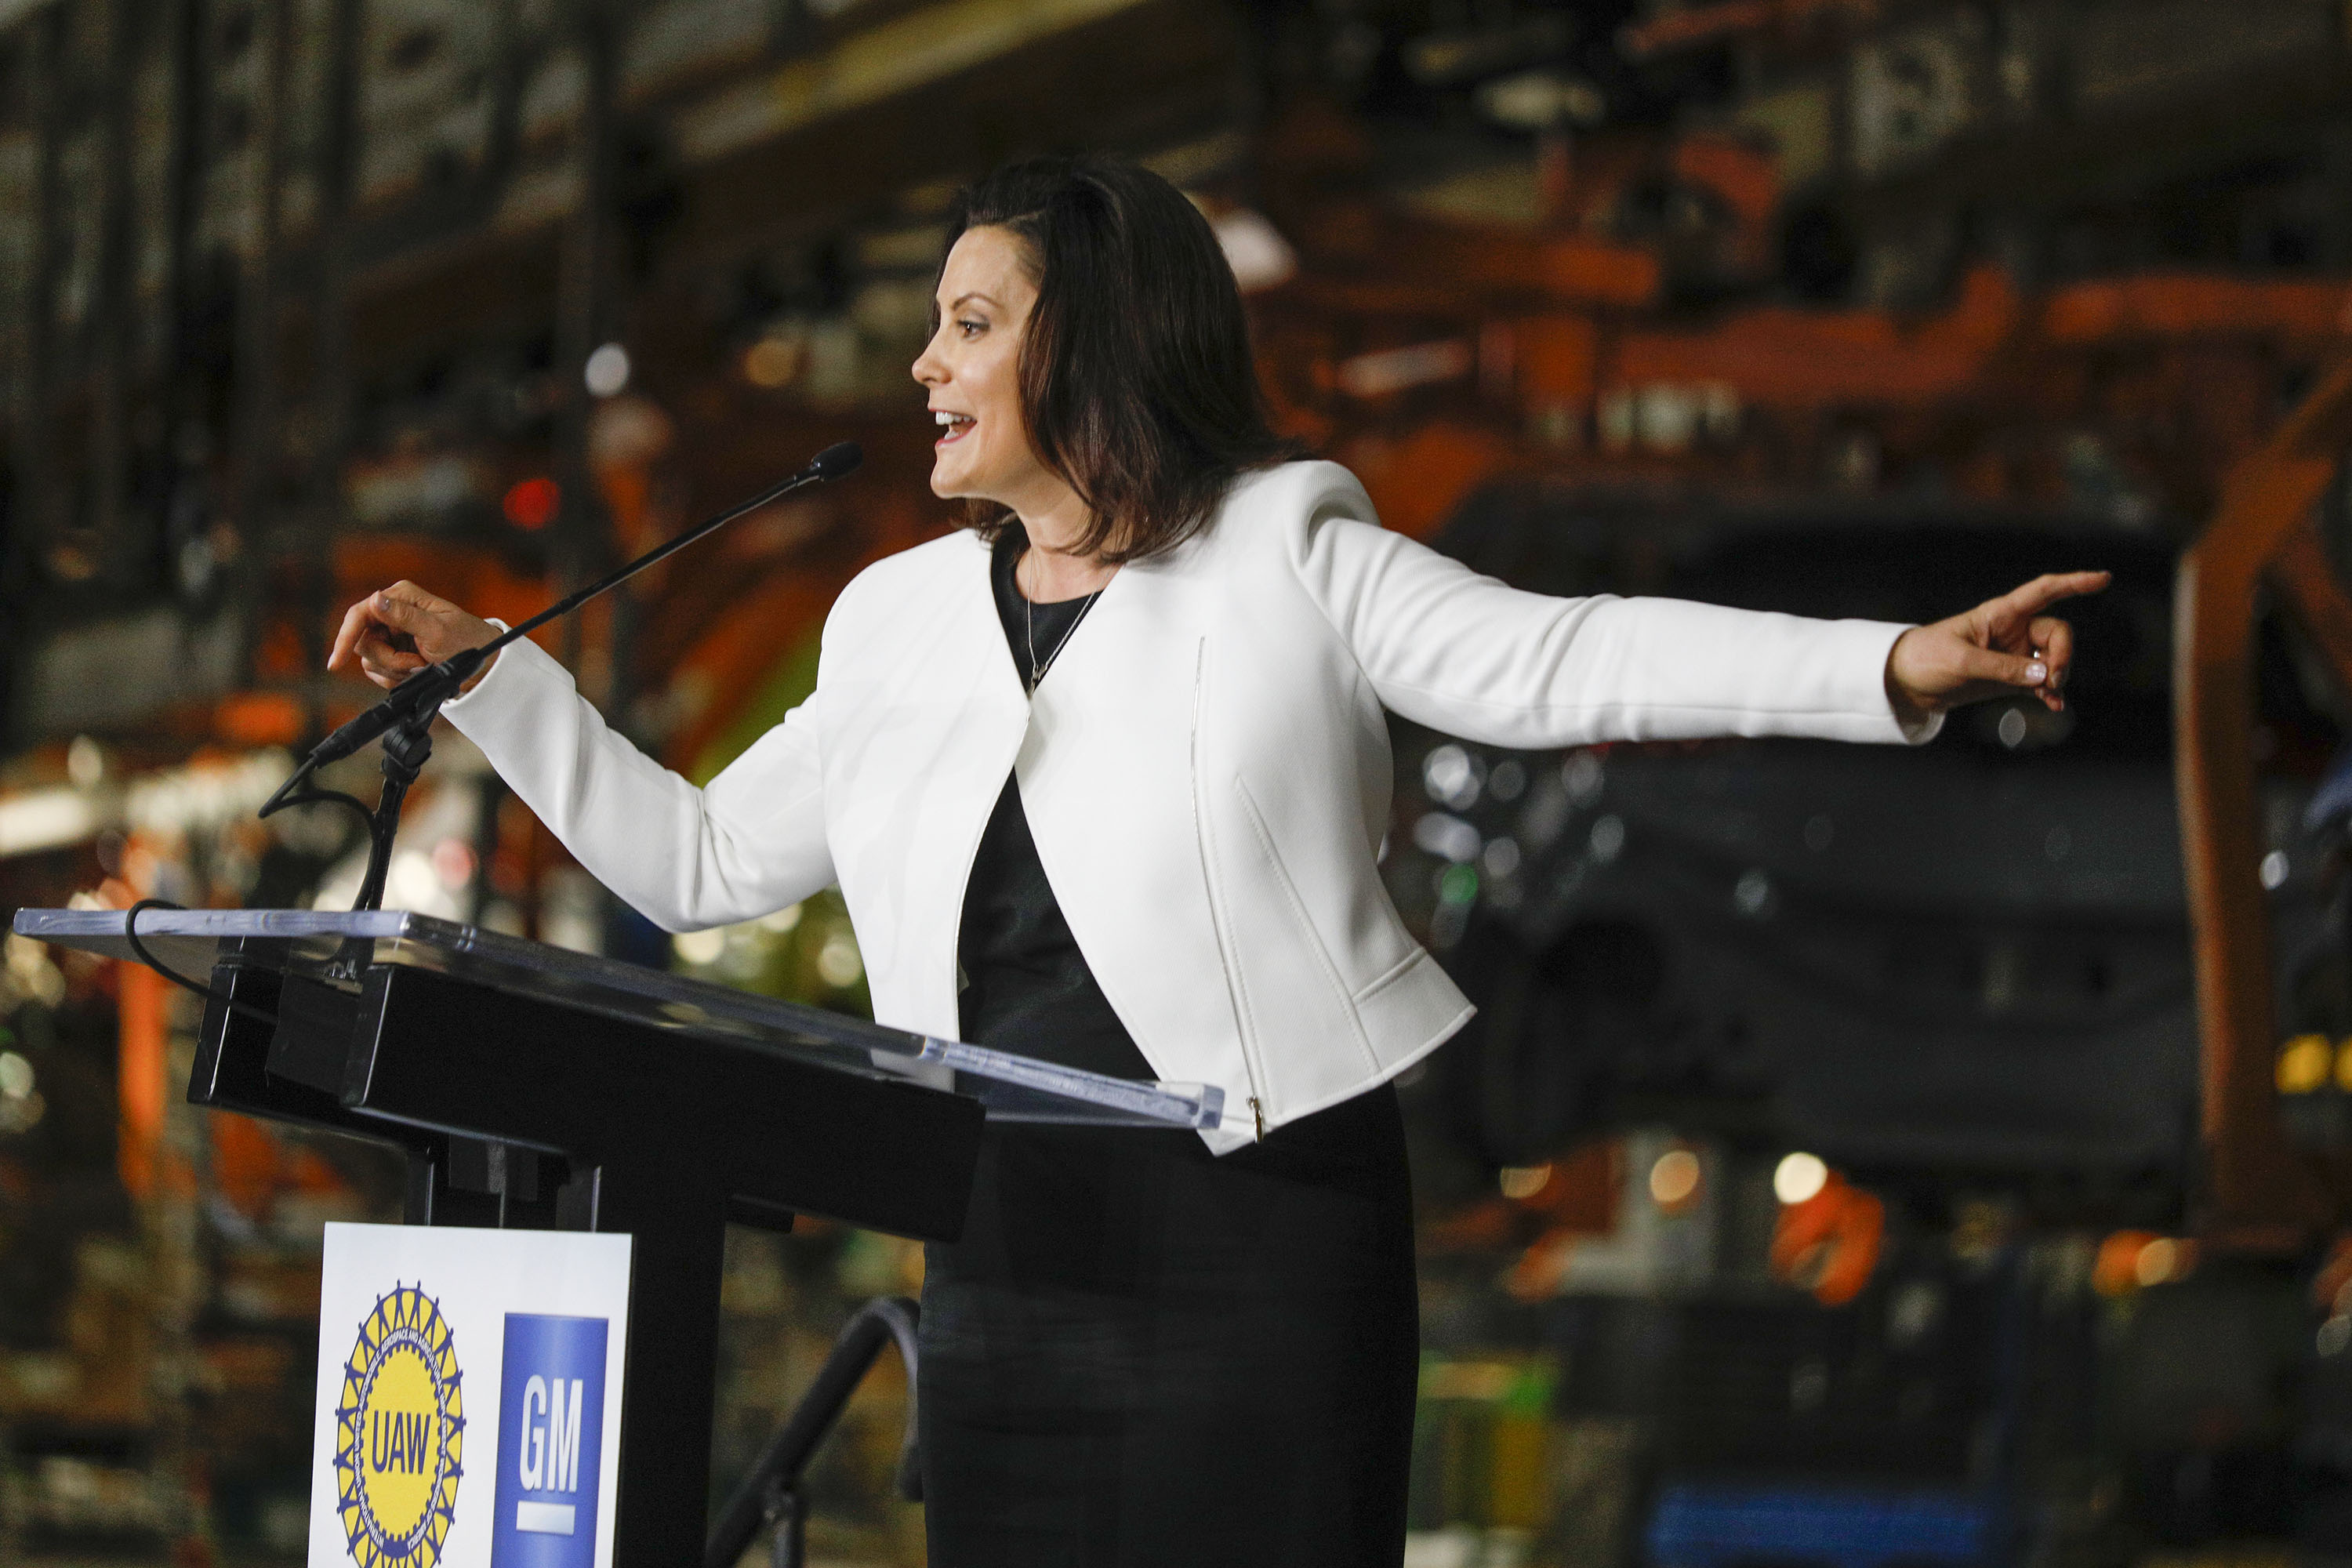 LAKE ORION, MI - MARCH 22: Michigan Gov. Gretchen Whitmer speaks at an event where General Motors Chairman and CEO Mary Barra announced a $300 million investment in the GM Orion Assembly Plant plant for electric and self-driving vehicles at the Orion Assembly Plant on March 22, 2019 in Lake Orion, Michigan. (Photo by Bill Pugliano/Getty Images)